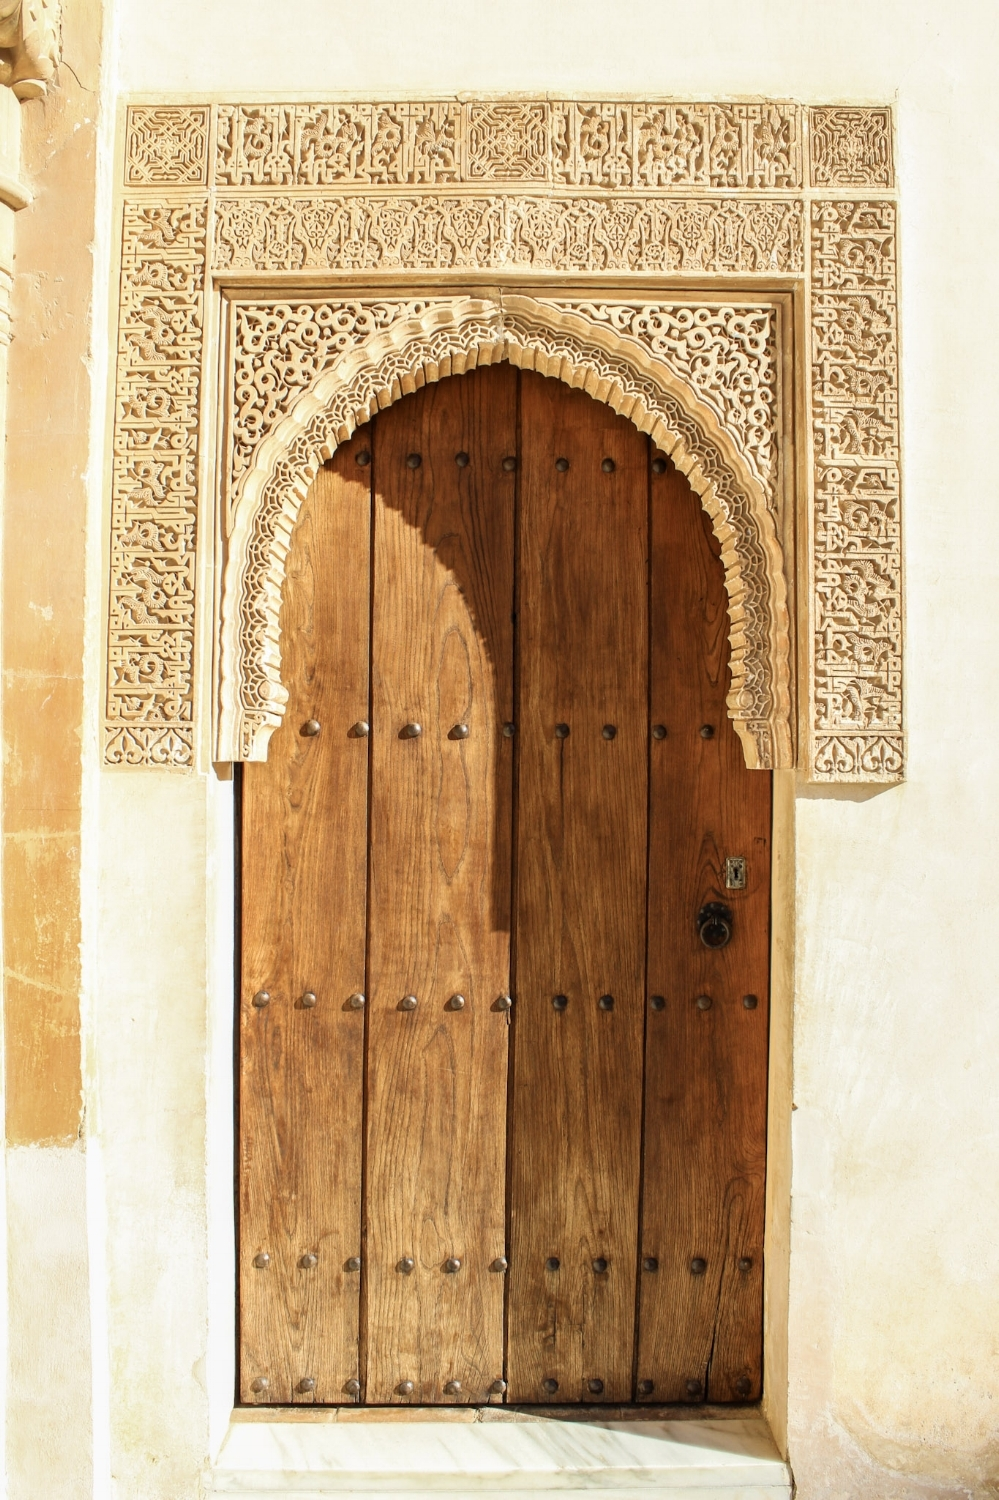 curio.trips.spain.andalusia.door.jpg